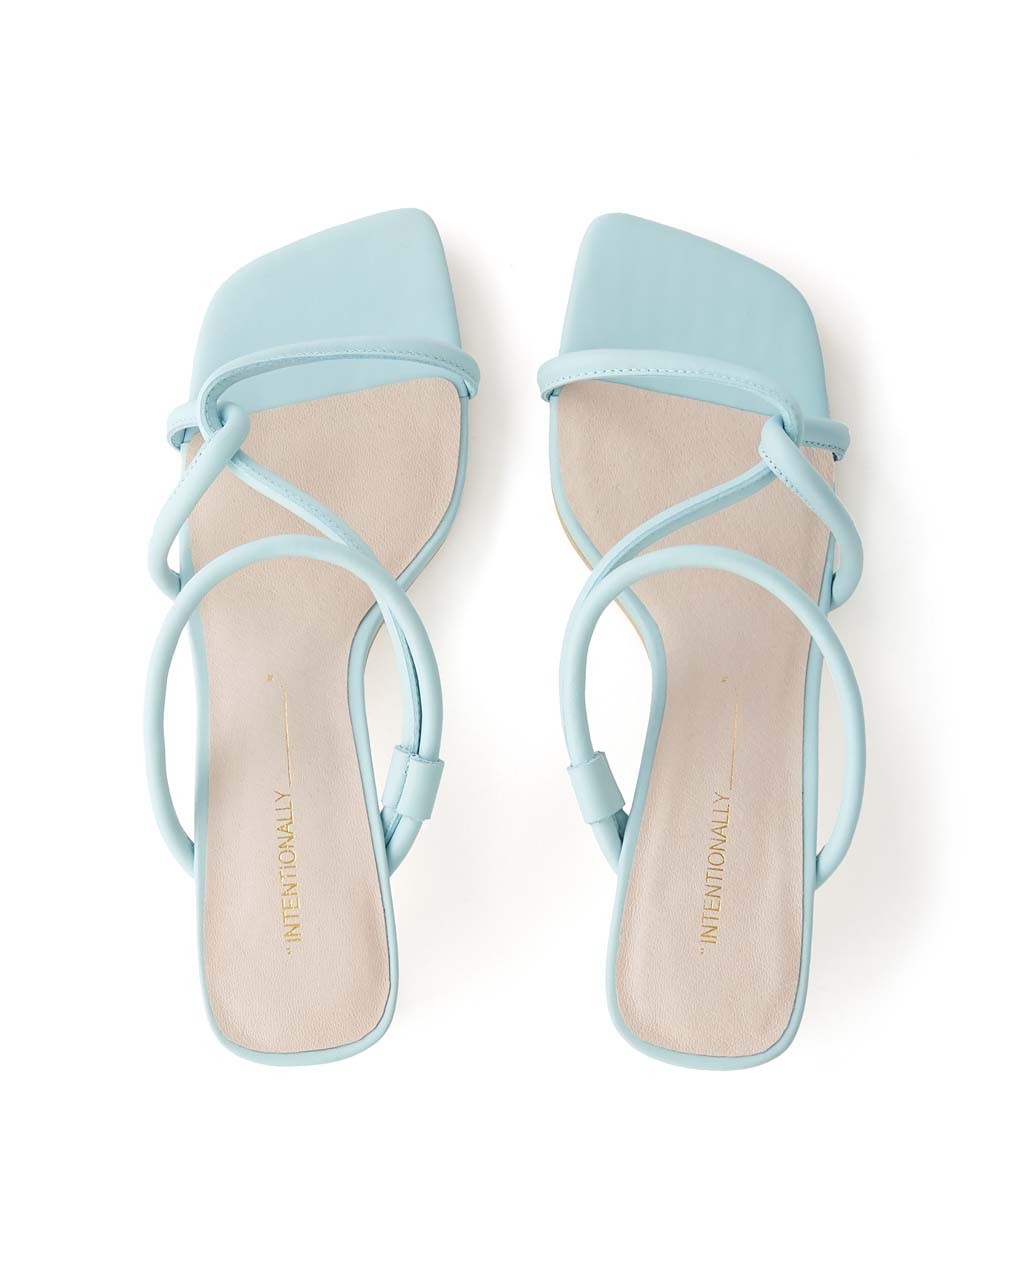 top view of a pair of baby blue sandals